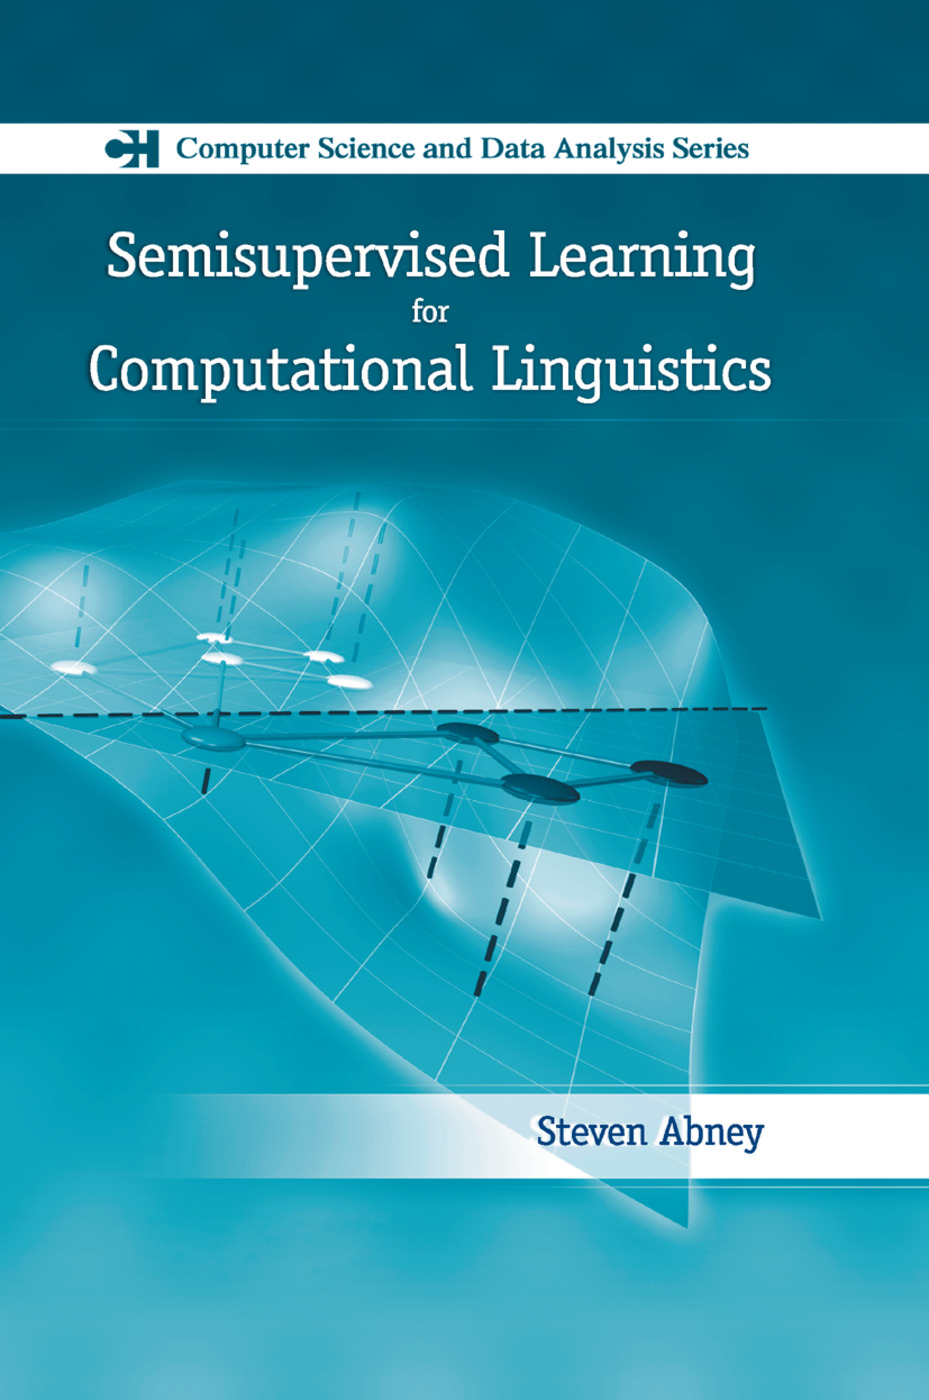 Semisupervised Learning for Computational Linguistics: 1st Edition (Paperback) book cover